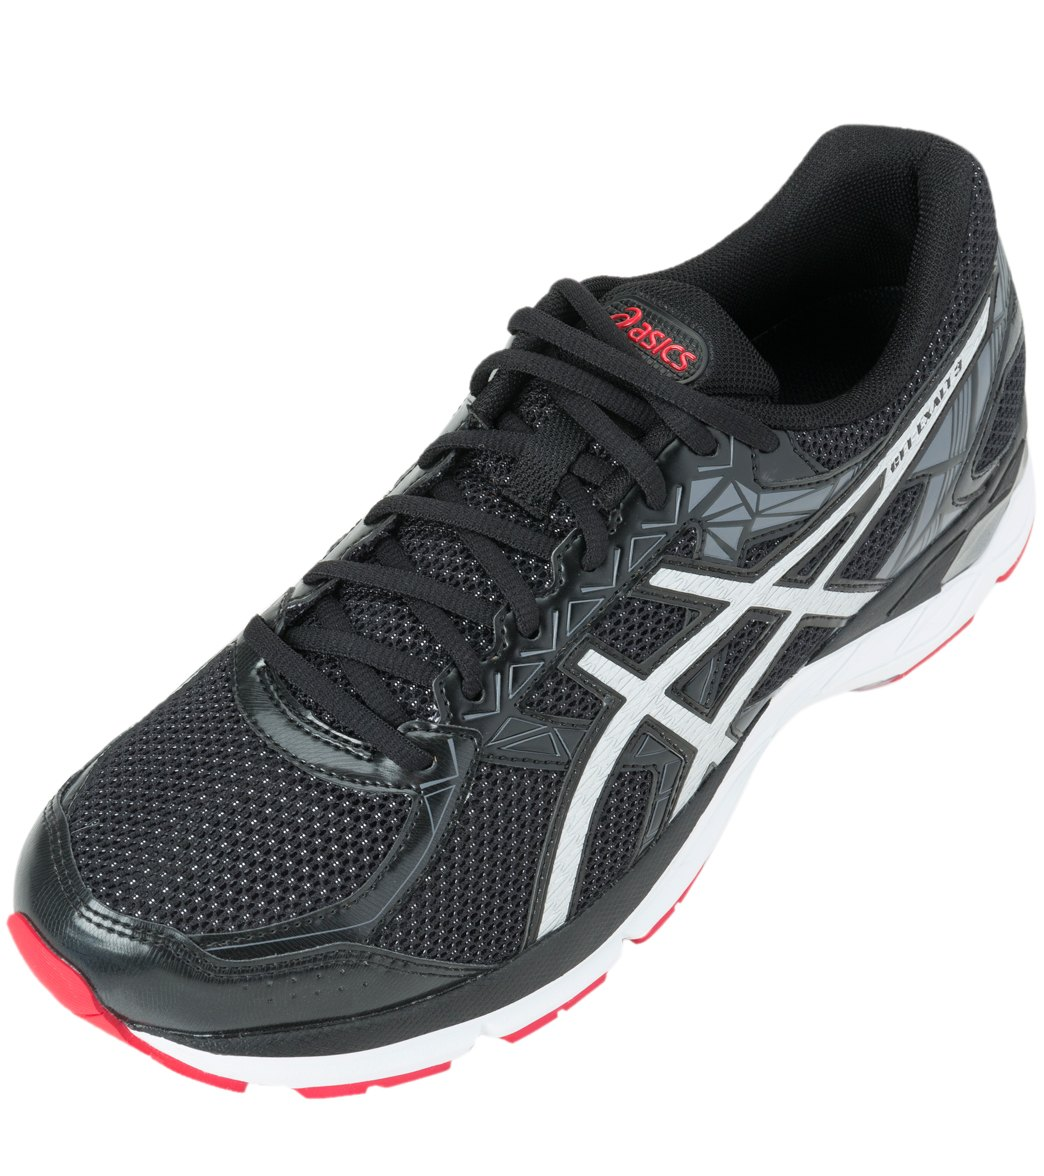 asics gel-exalt running shoes